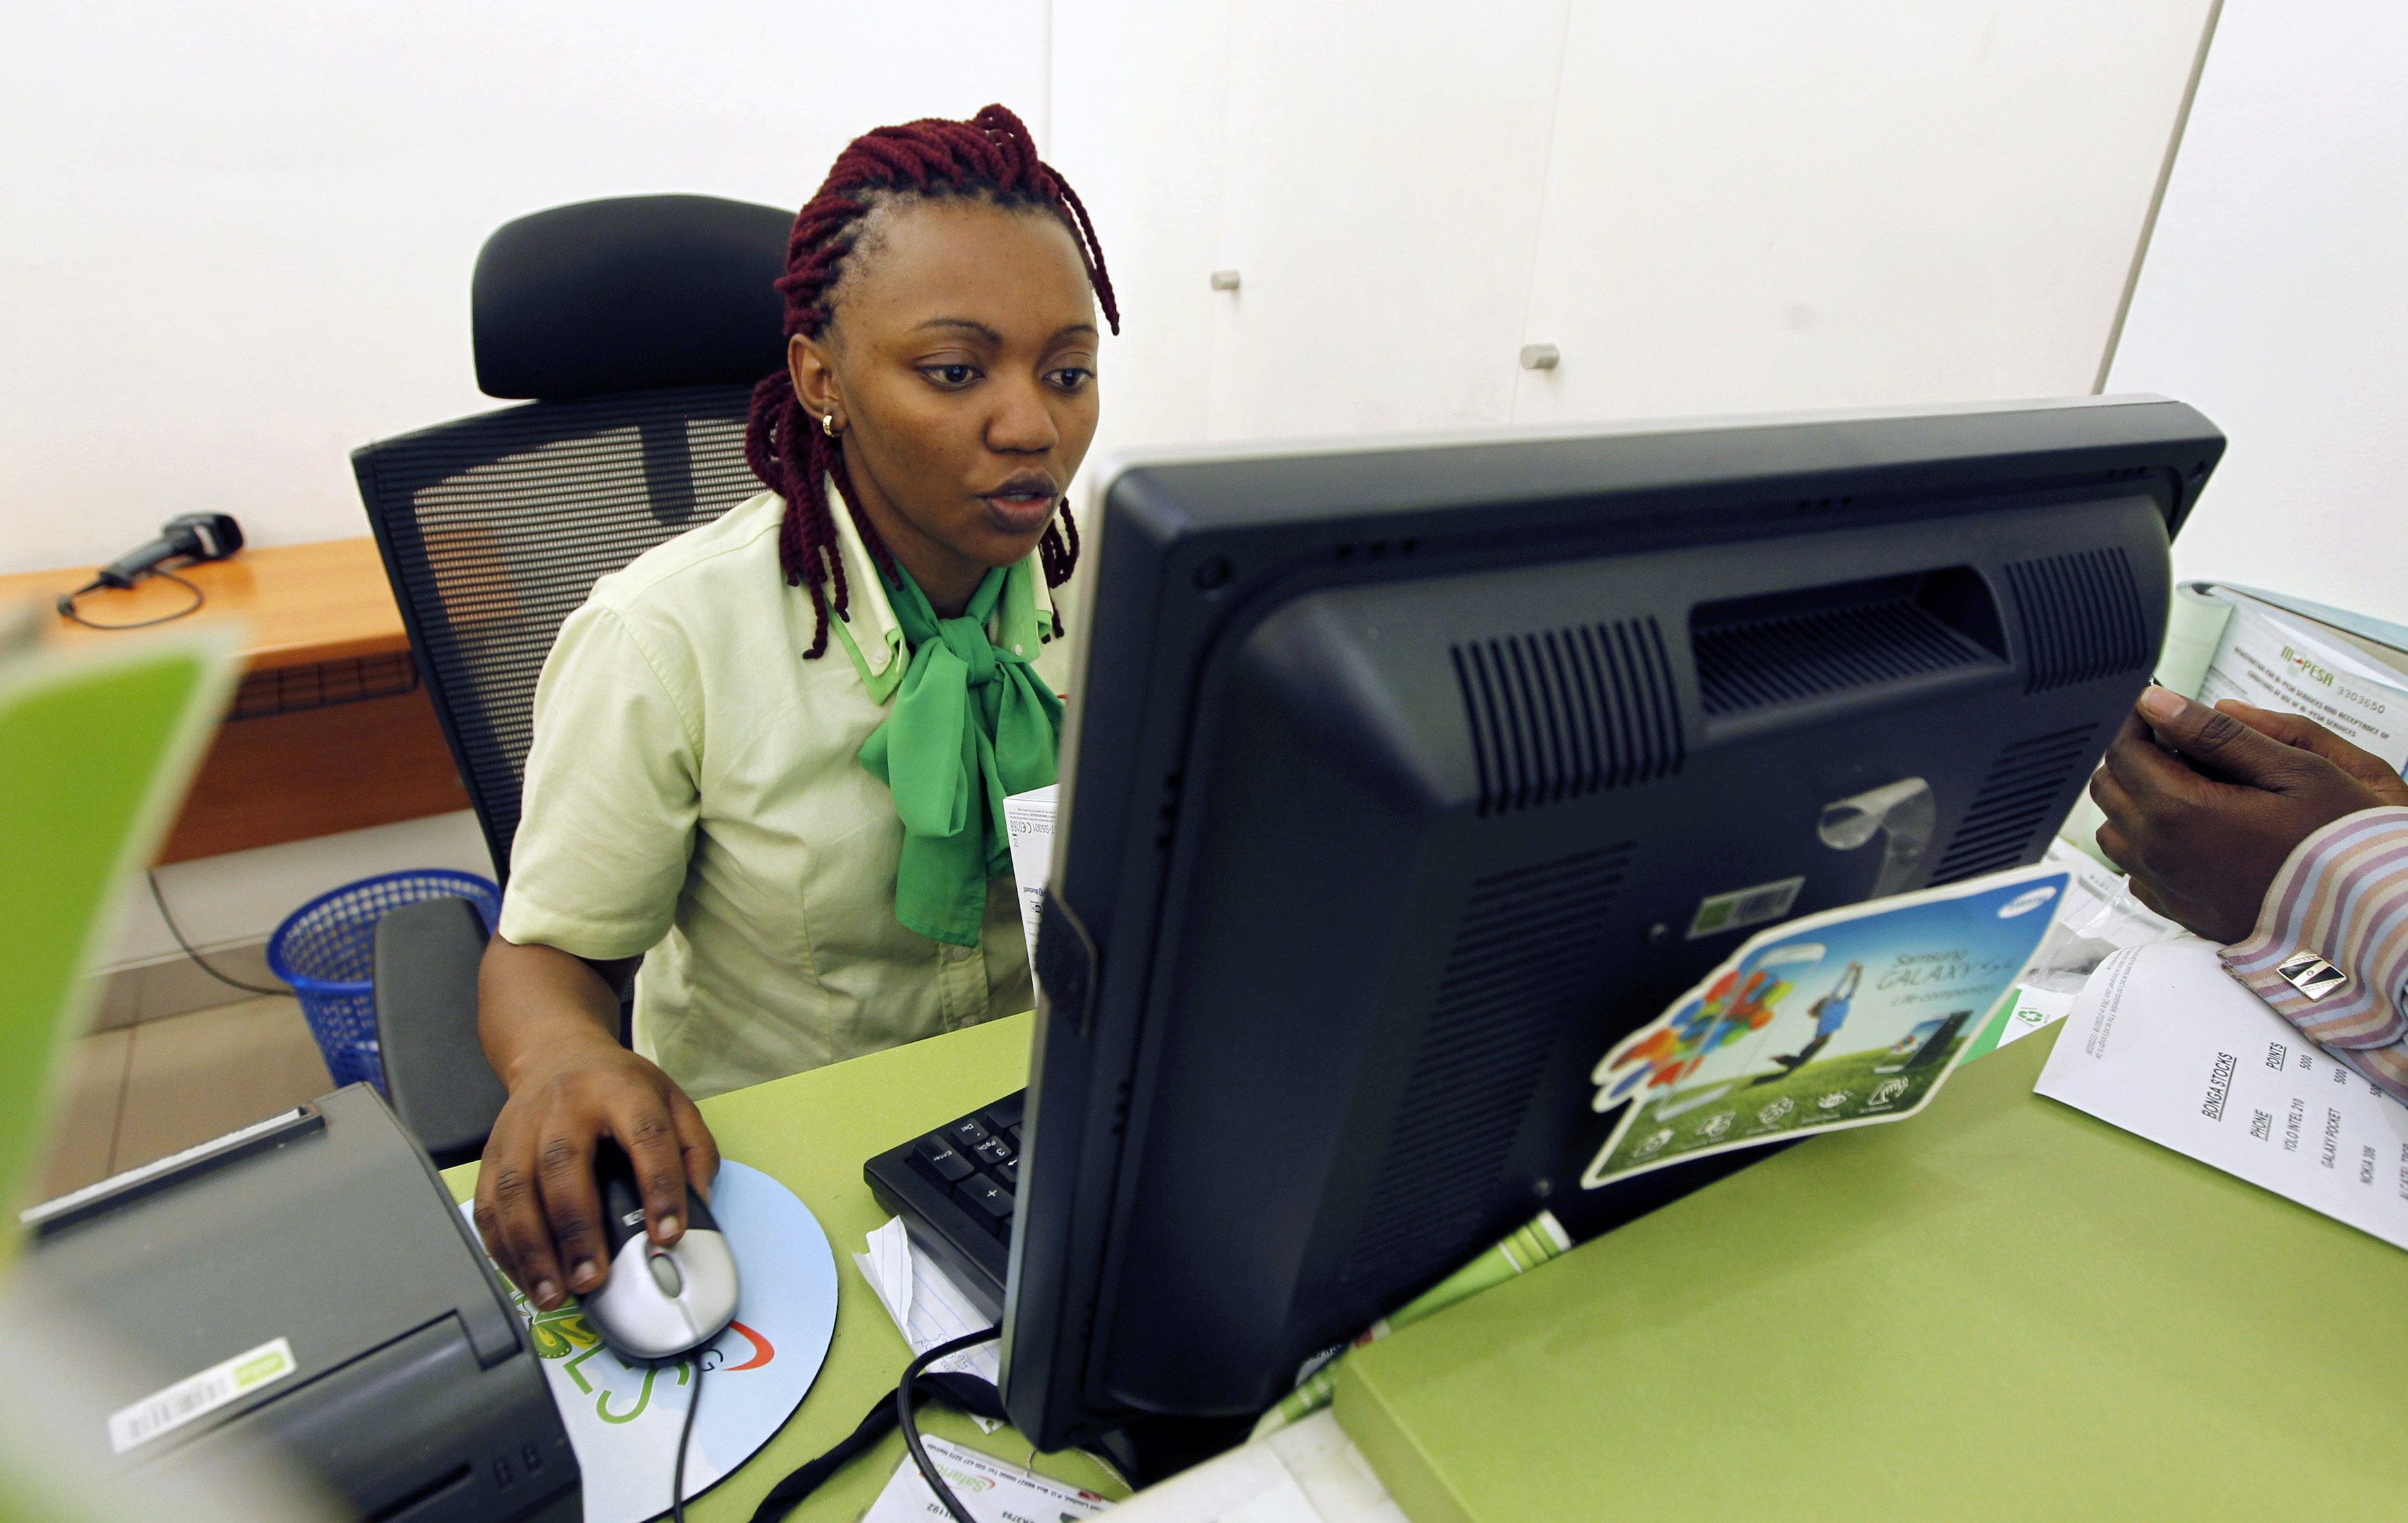 An employee registers a customer for a mobile money transfer, known as M-Pesa, inside the Safaricom mobile phone care centre in the central business district of Kenya's capital Nairobi July 15, 2013. To match Insight AFRICA-MOBILEMONEY/   Picture taken July 15, 2013.  REUTERS/Thomas Mukoya (KENYA - Tags: BUSINESS TELECOMS) - GM1EA7U1QTU01